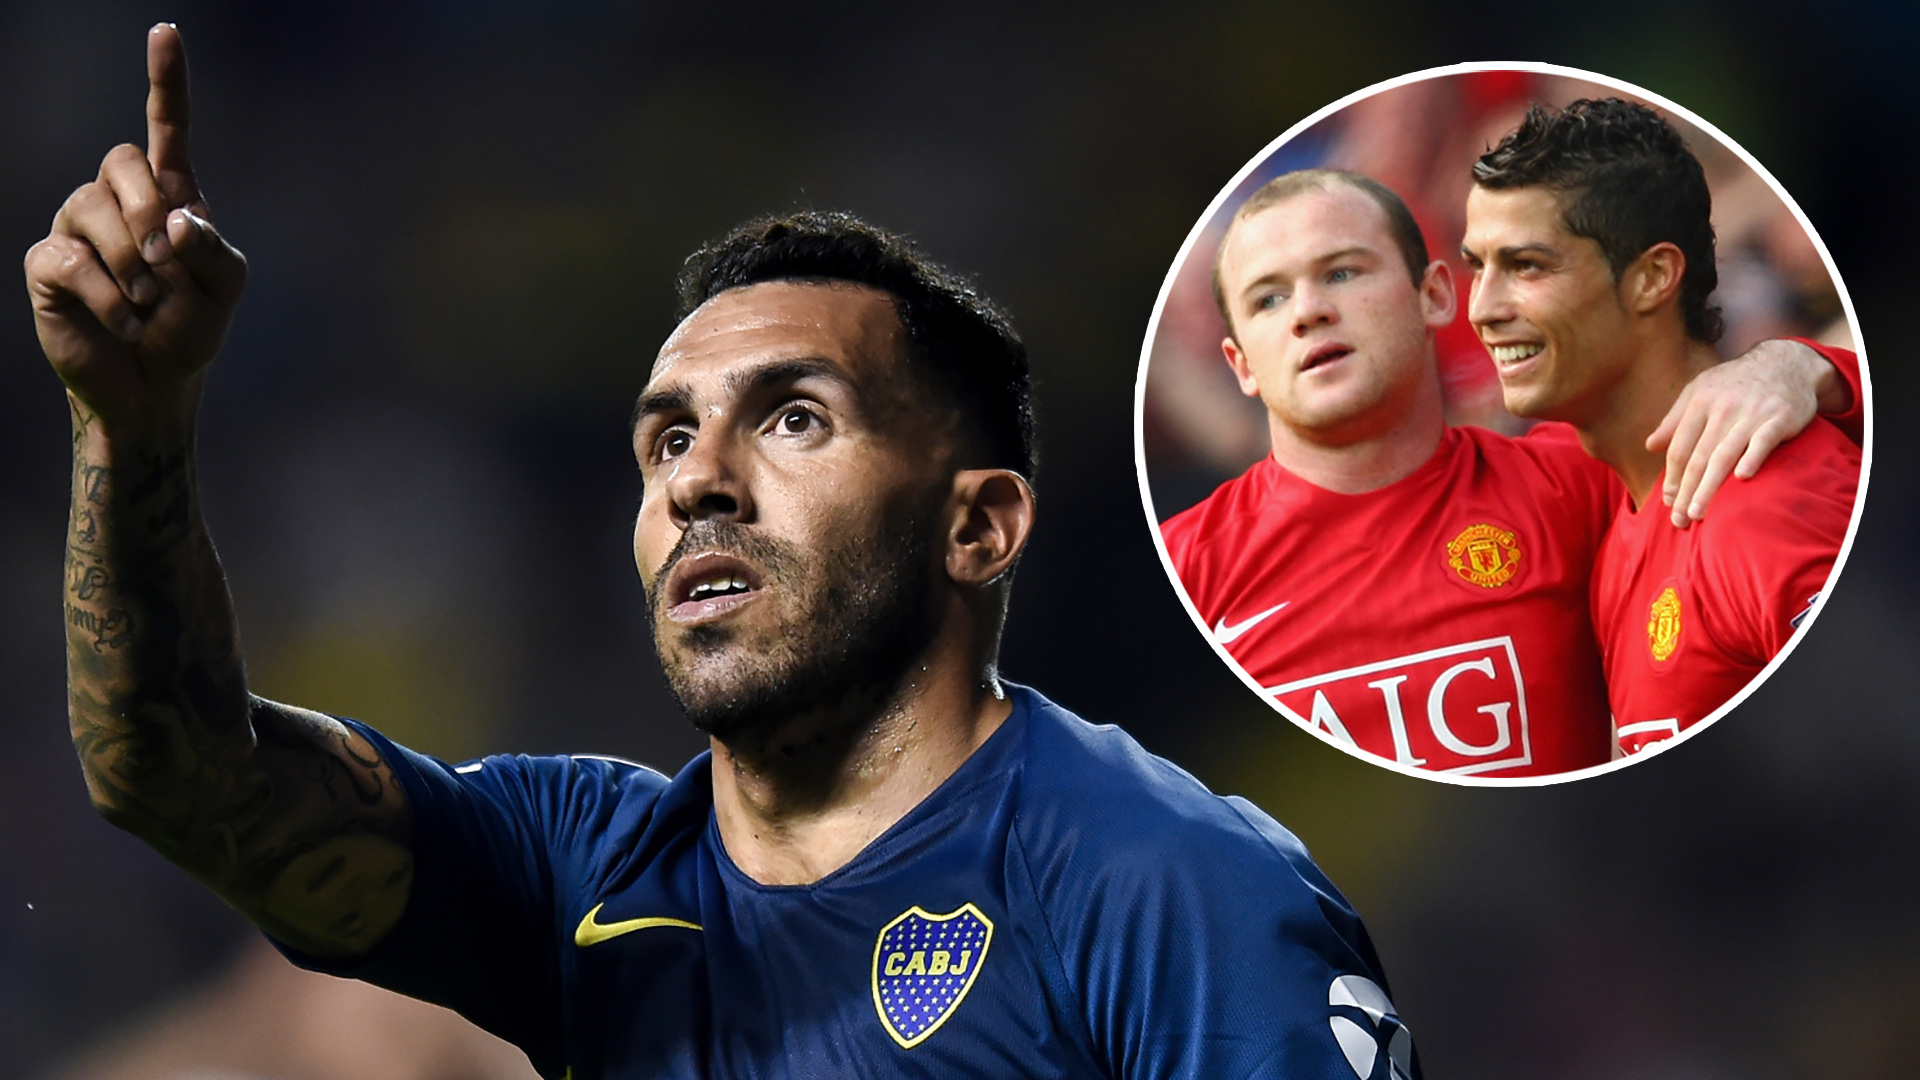 Ronaldo & Rooney join Messi in Tevez's dream XI as seven Man Utd players feature but City stars snubbed